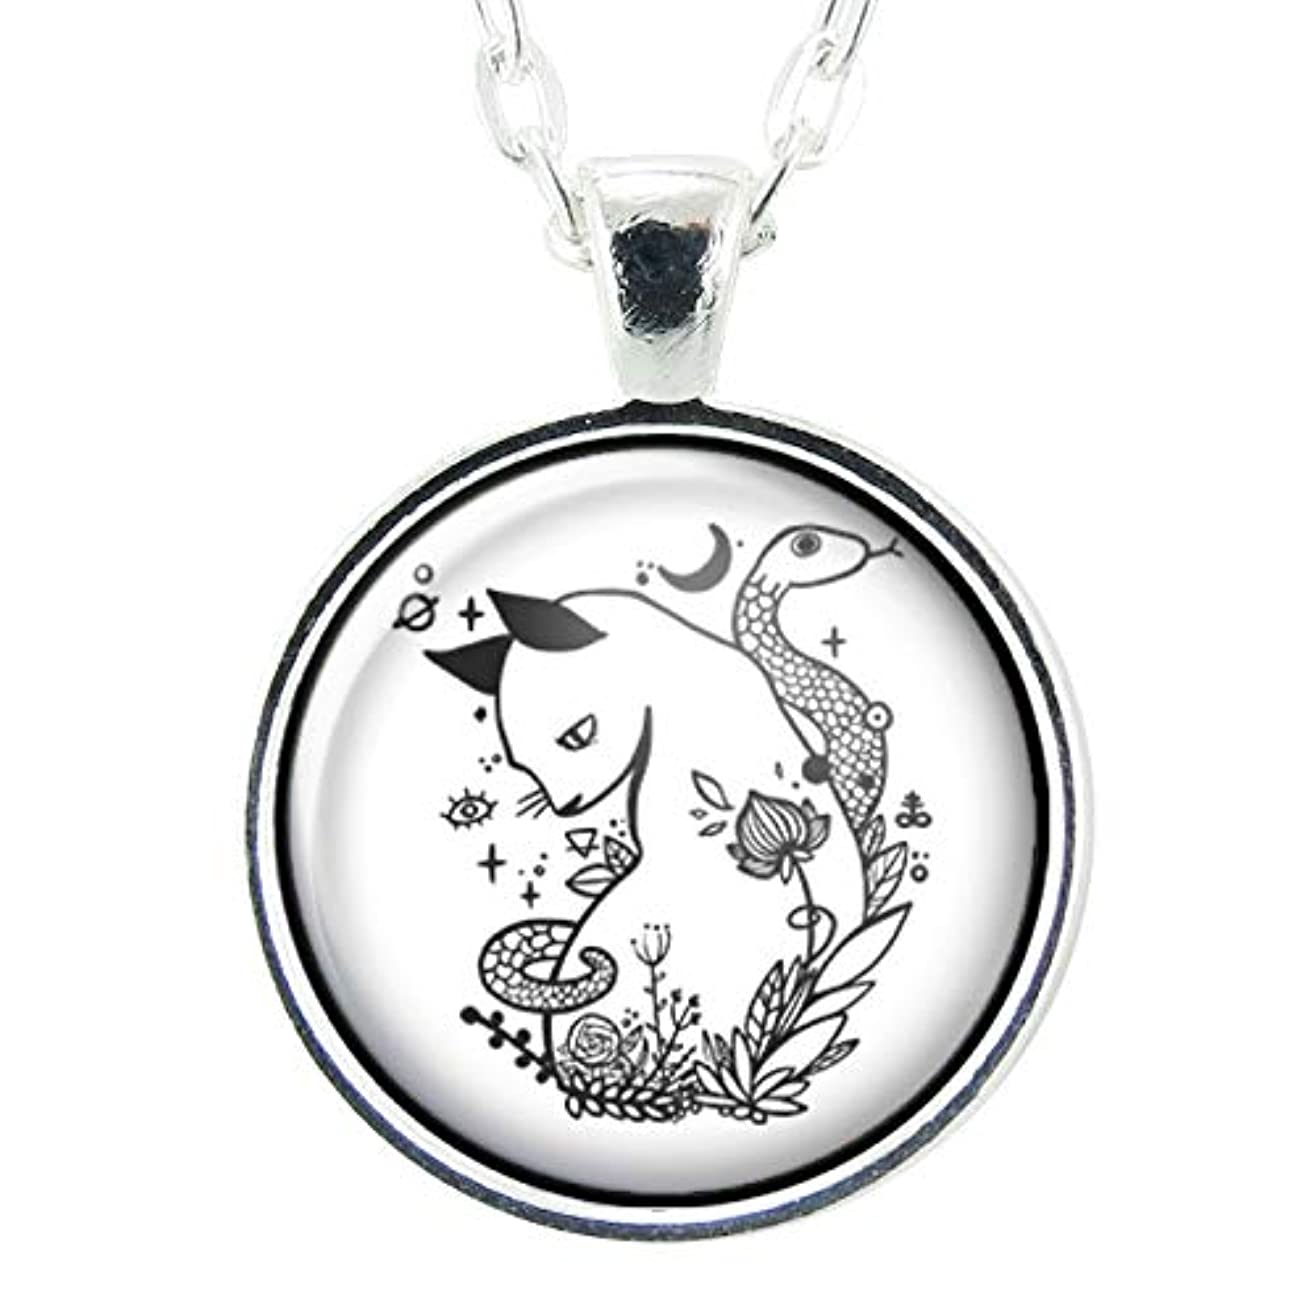 Cat And Snake Handmade Art Pendant Necklace, White Charm With Chain